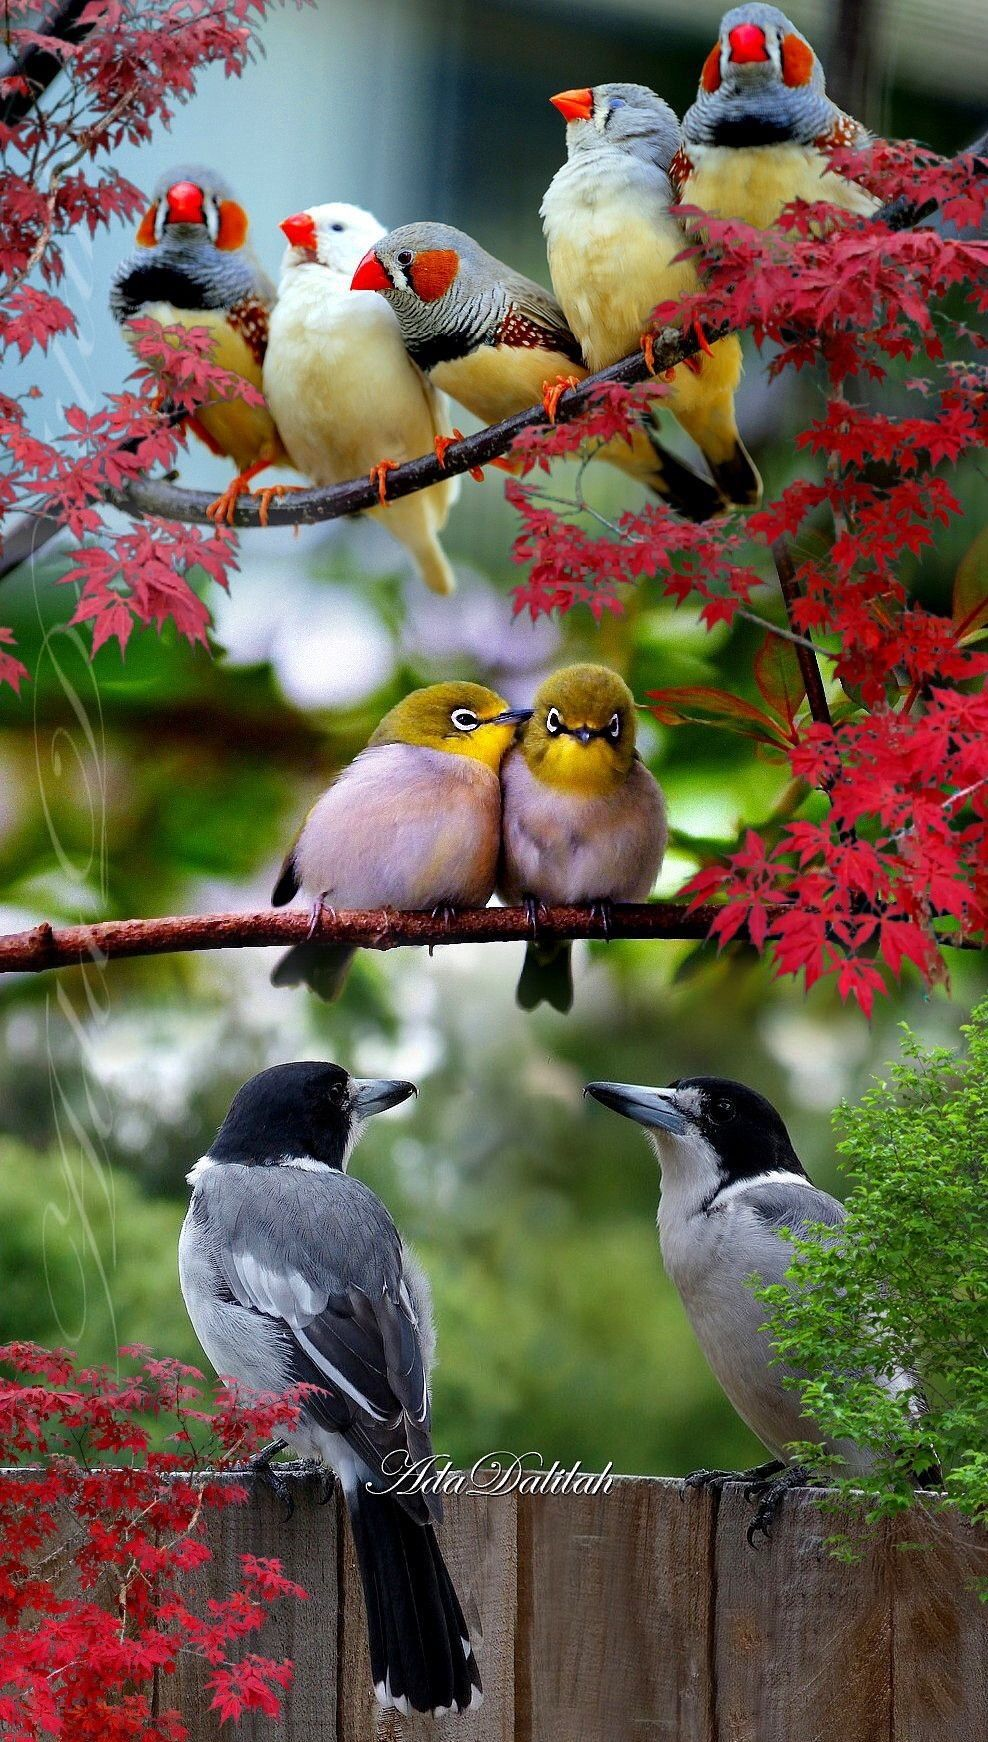 Pin By Valerie Dennison On Amazingly Beautiful Nature Beautiful Birds Animals Beautiful Nature Birds